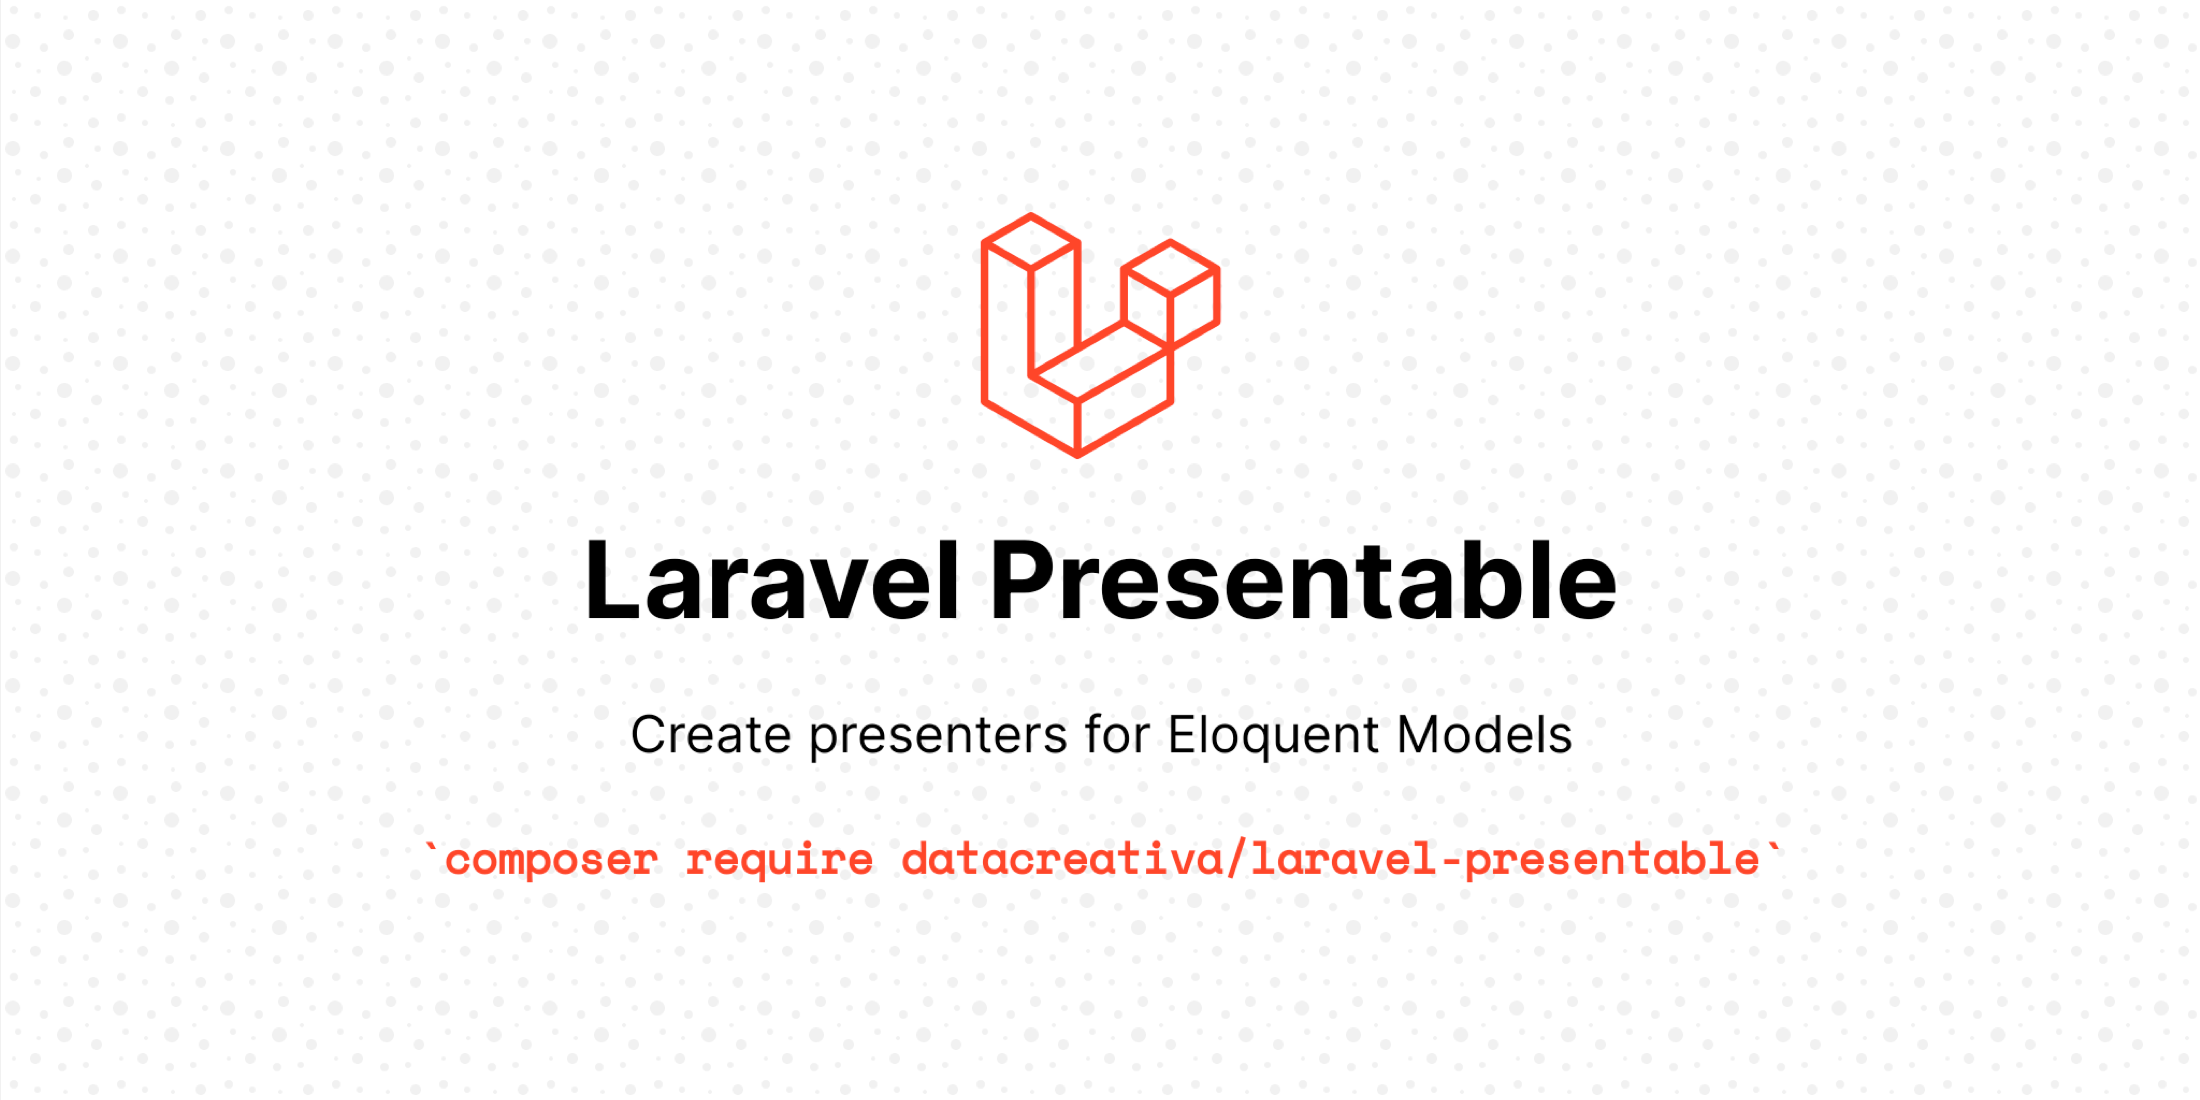 laravel-presentable-featured.png